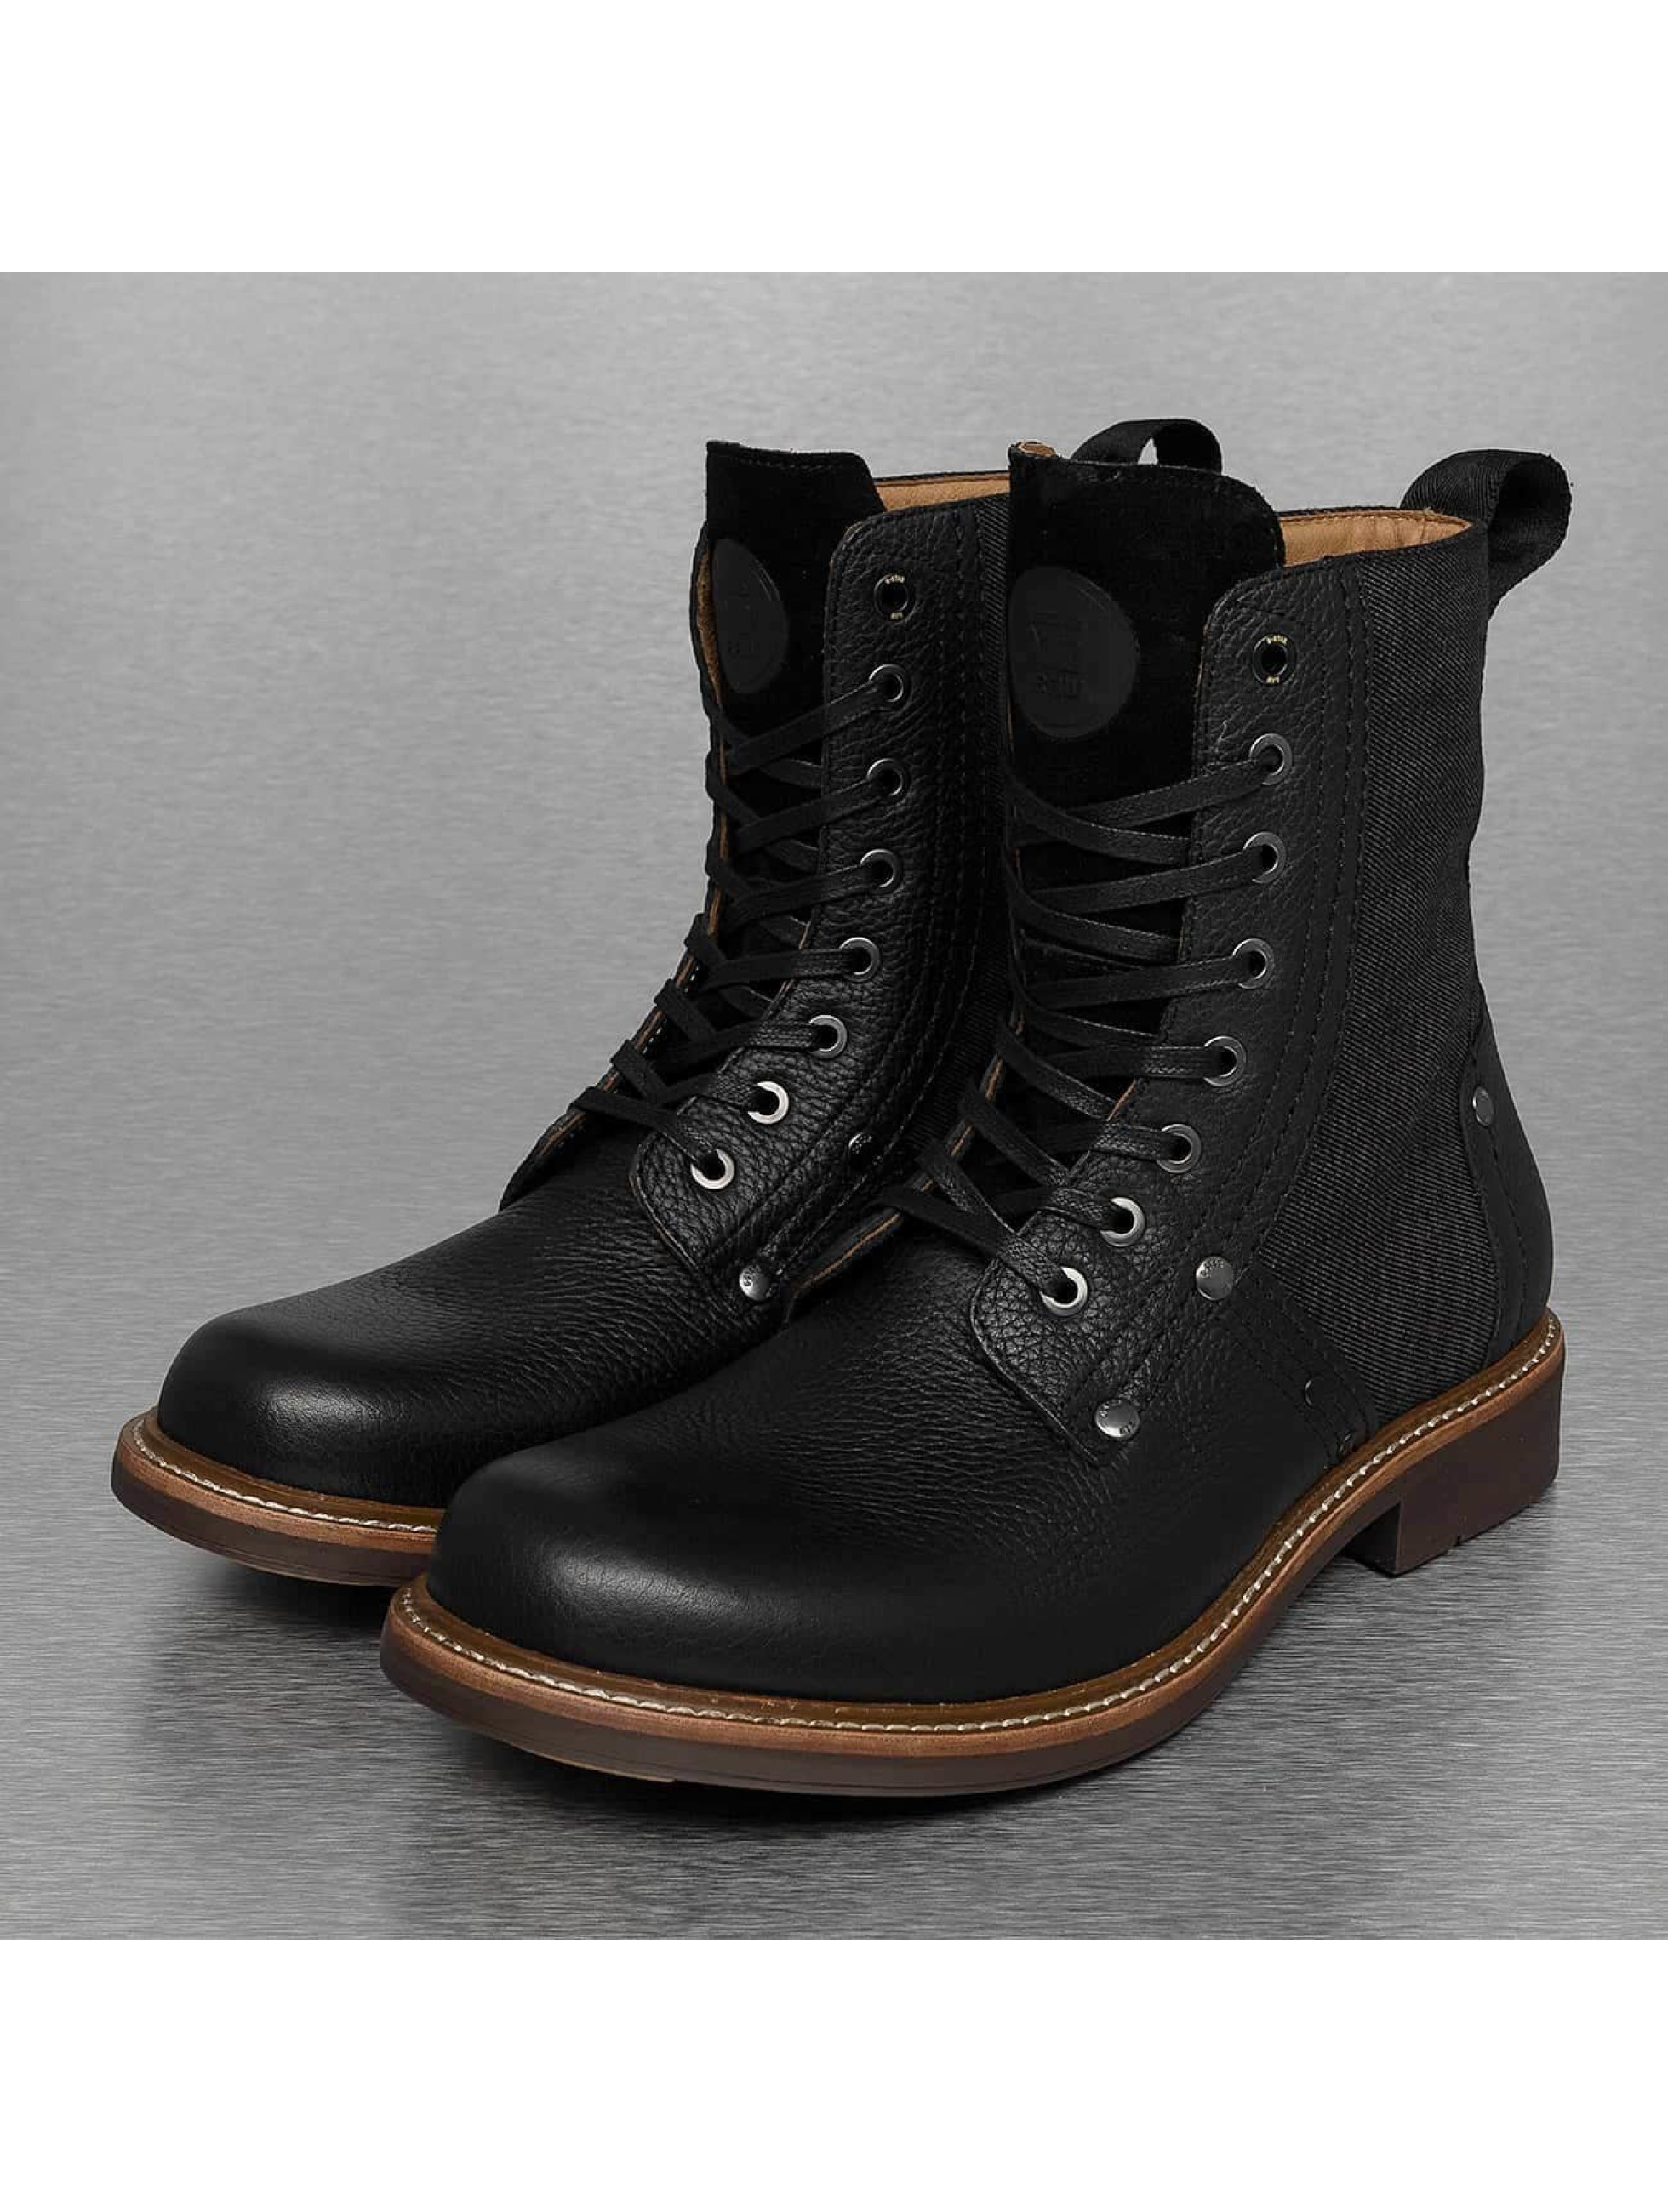 G-Star Footwear Boots Labour Leather nero